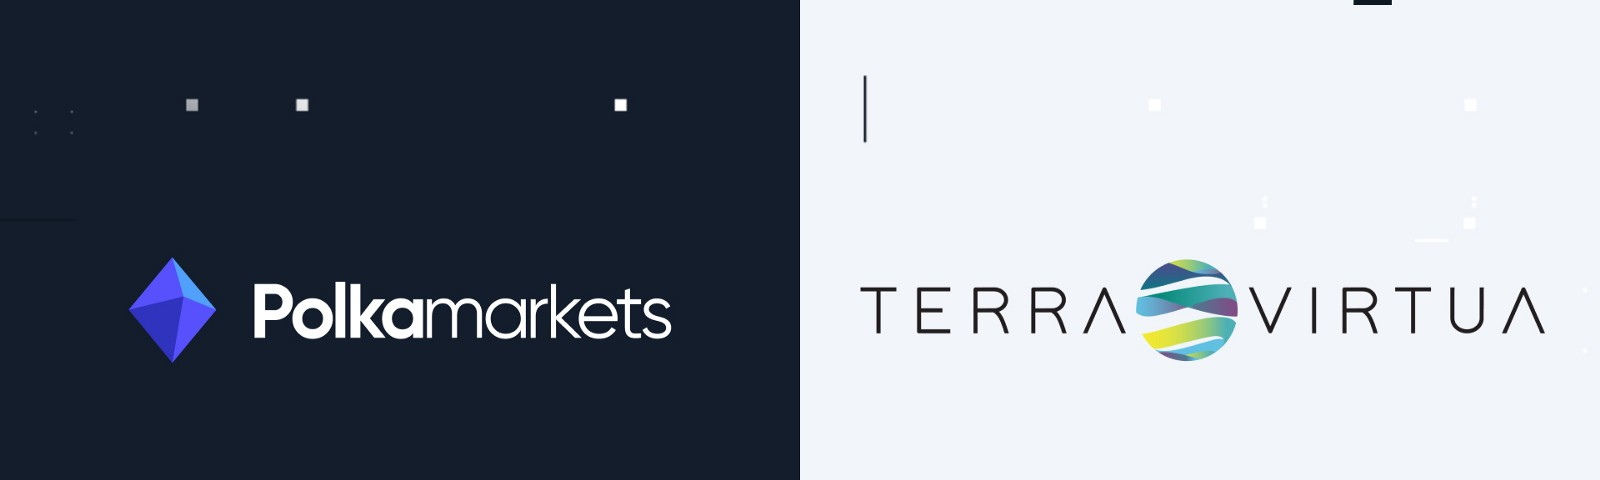 Polkamarkets Partners with Terra Virtua for NFT Gamification Technology